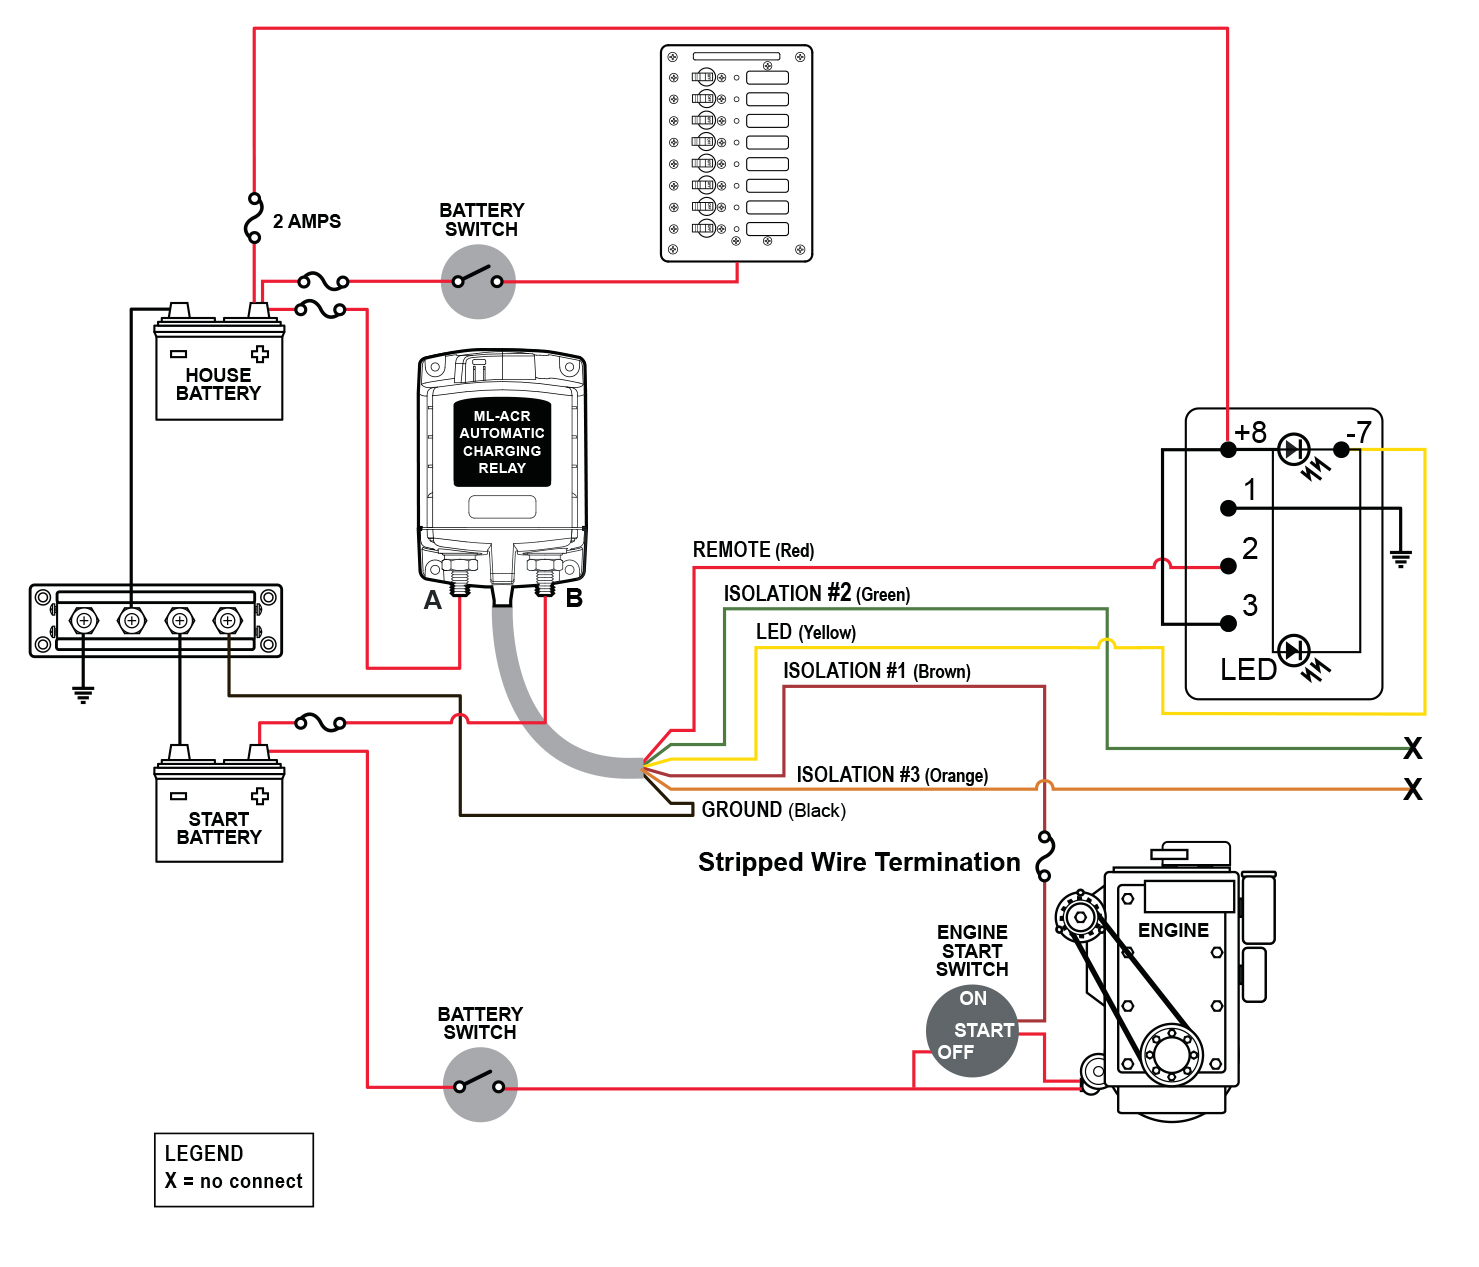 Bss Ml Acr Wiring Diagram on dual battery switch wiring diagram